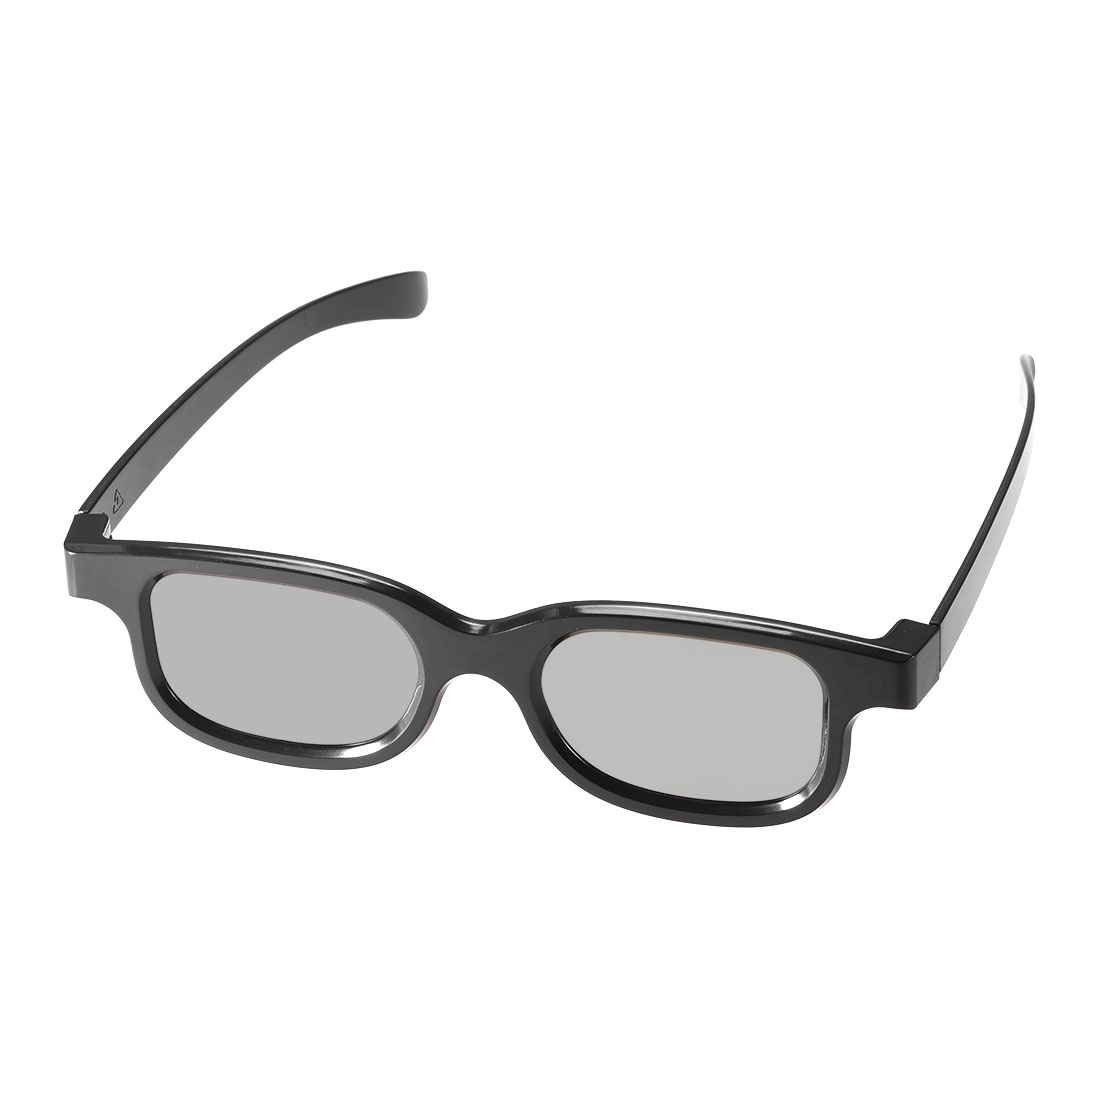 3D Polarized Glasses Compatible with Reald Cinema